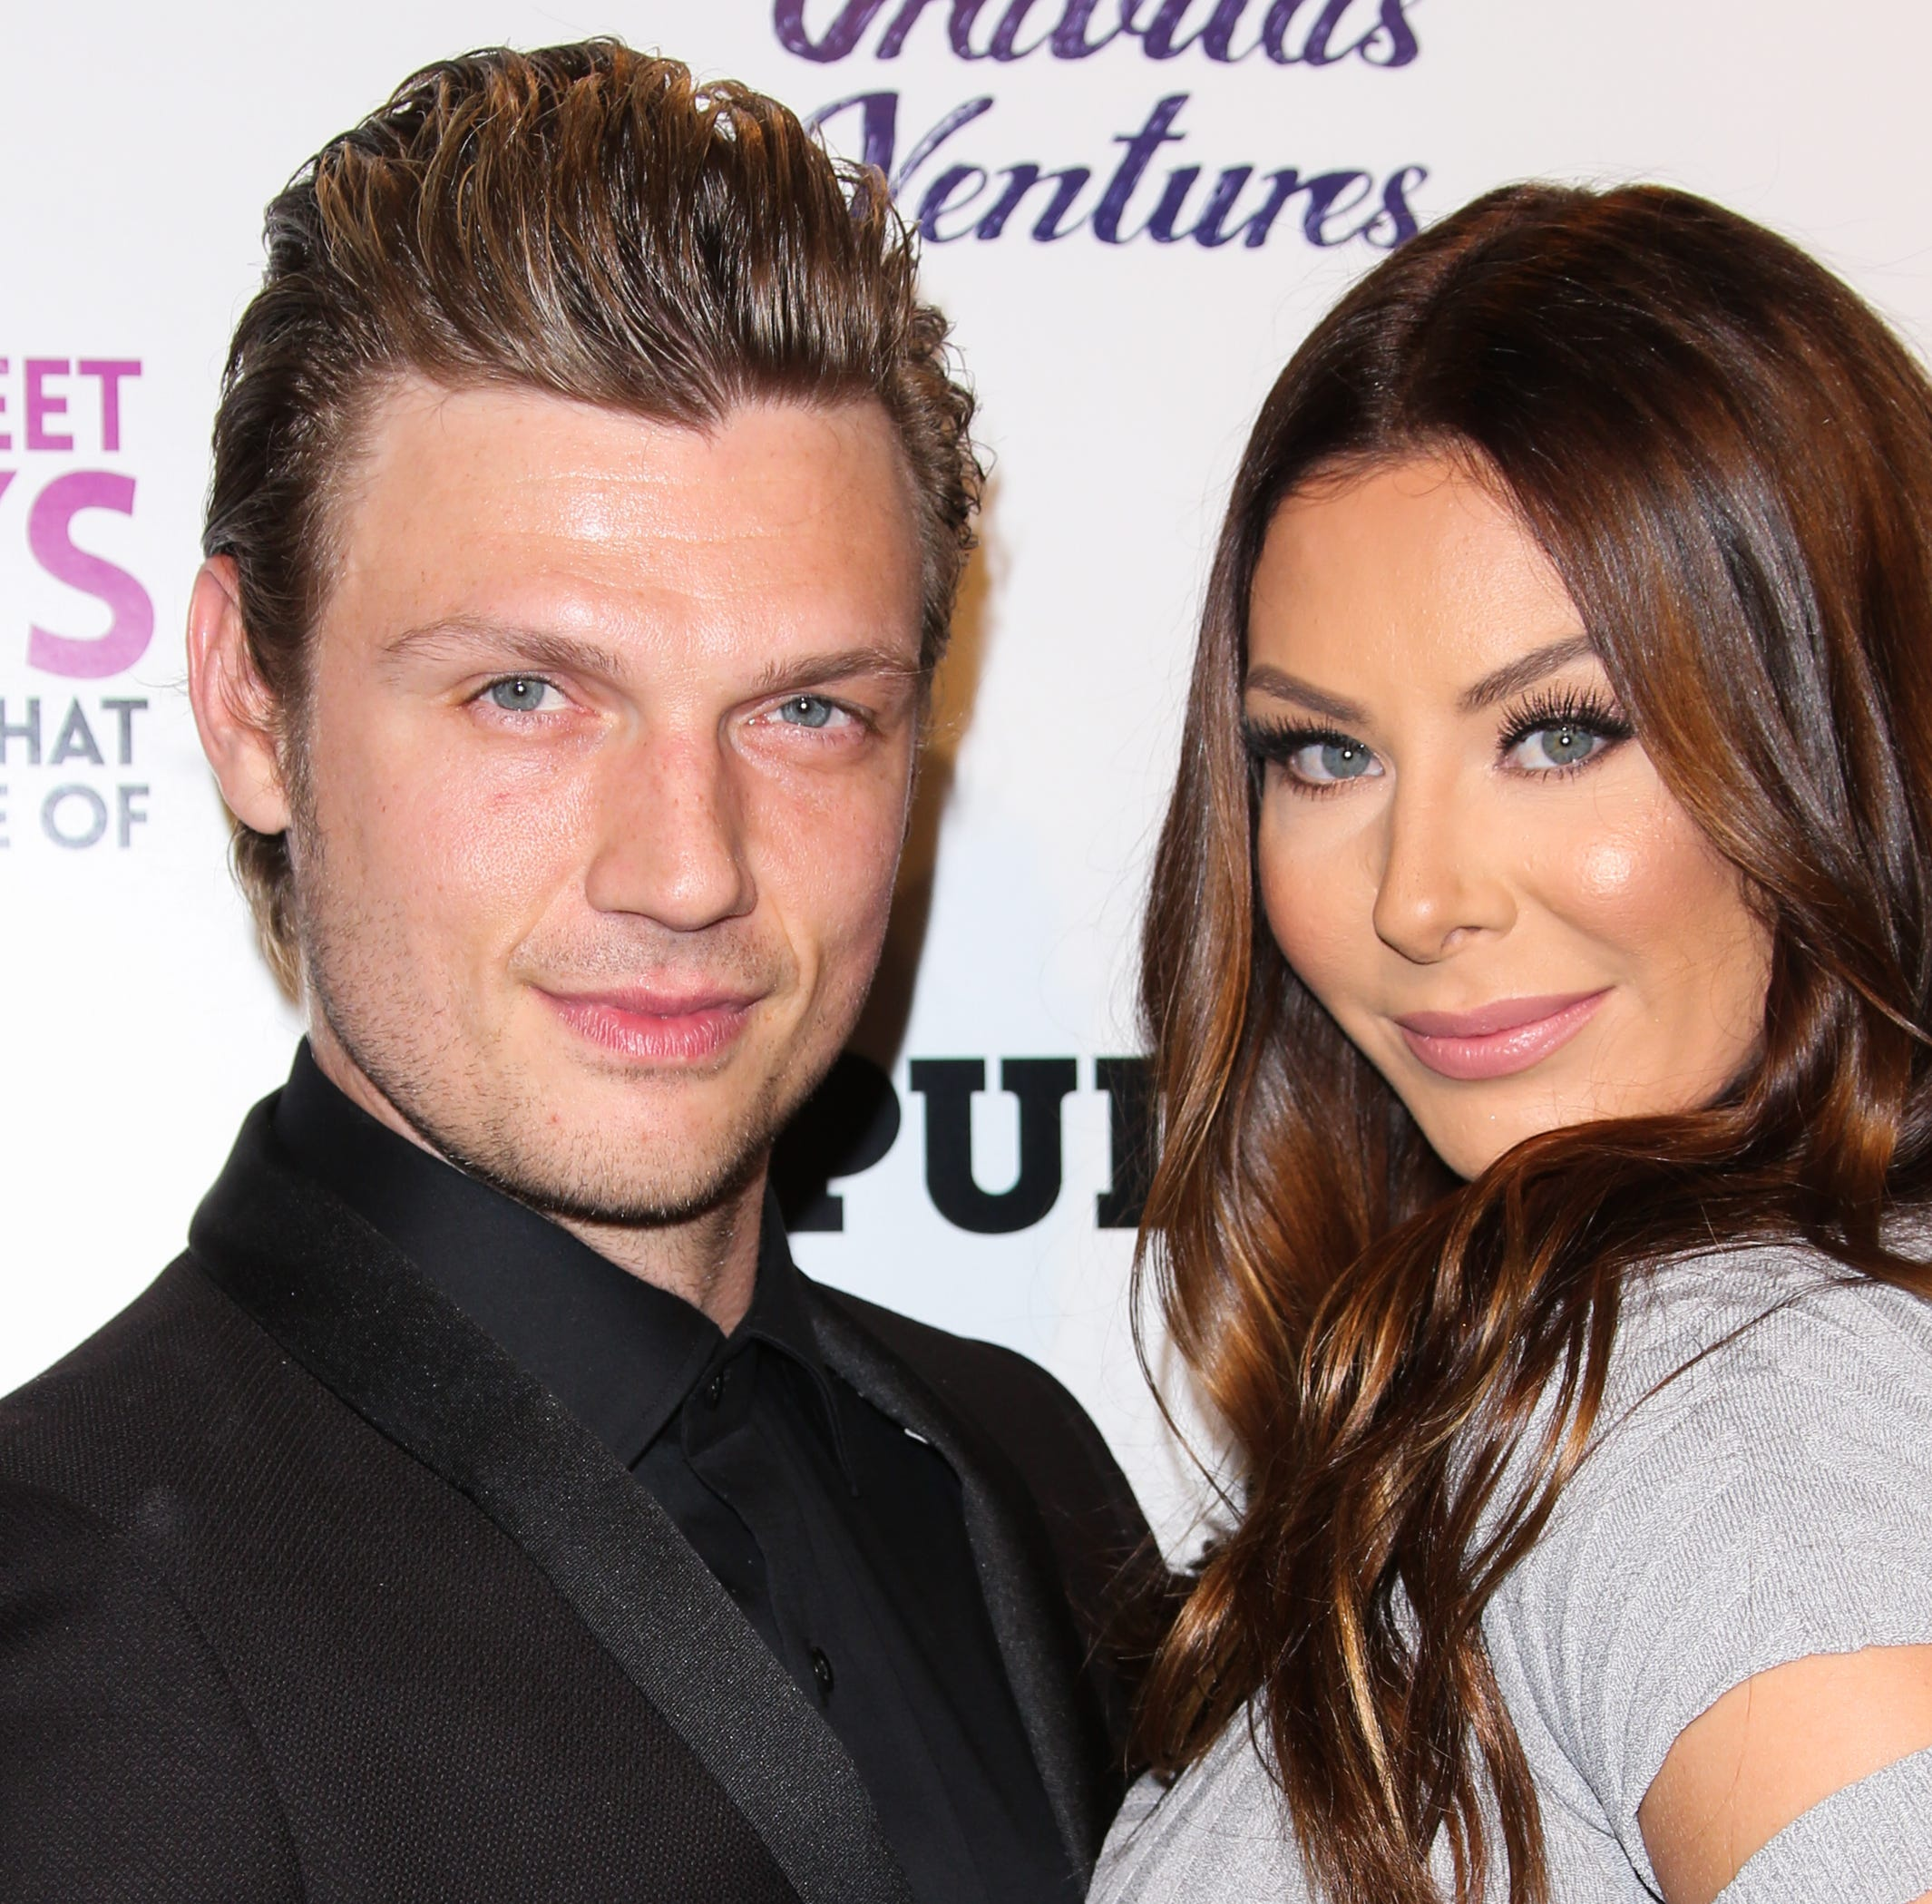 Nick Carter and Lauren Kitt are expecting a child together.